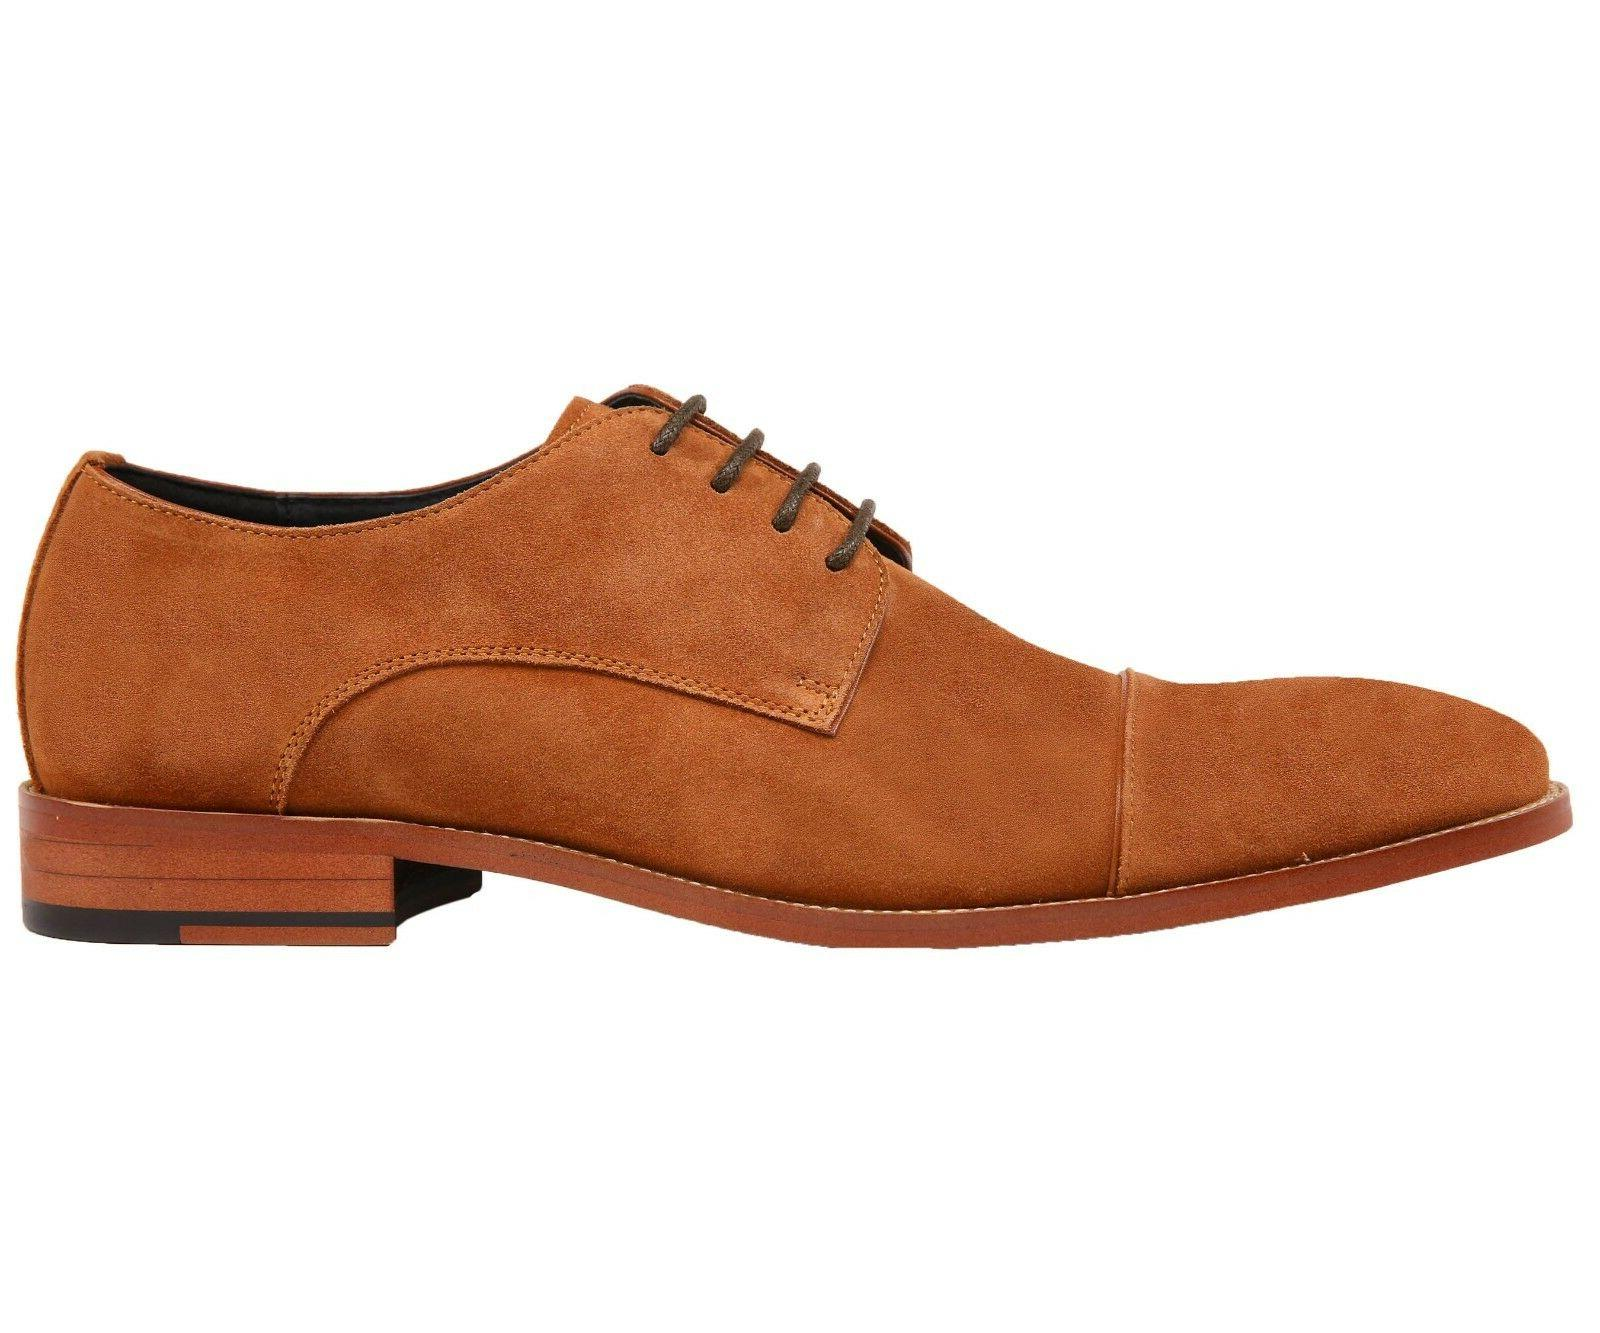 Asher Genuine Suede Cap Up Oxford Dress Shoe :